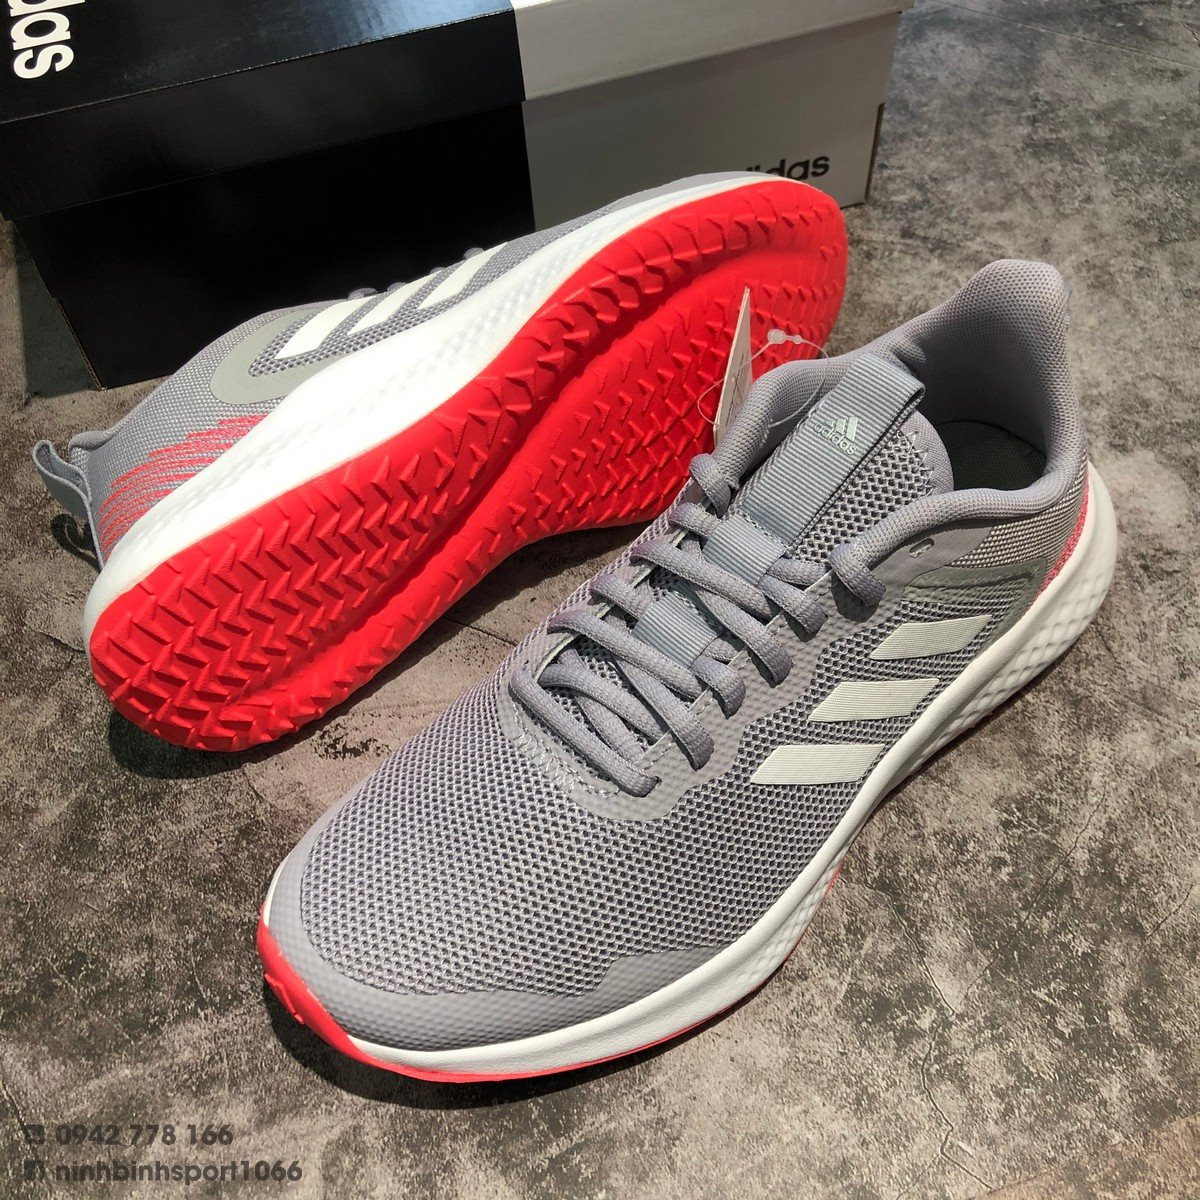 Giầy thể thao nữ Adidas Fluidstreet Shoes Grey FW1715